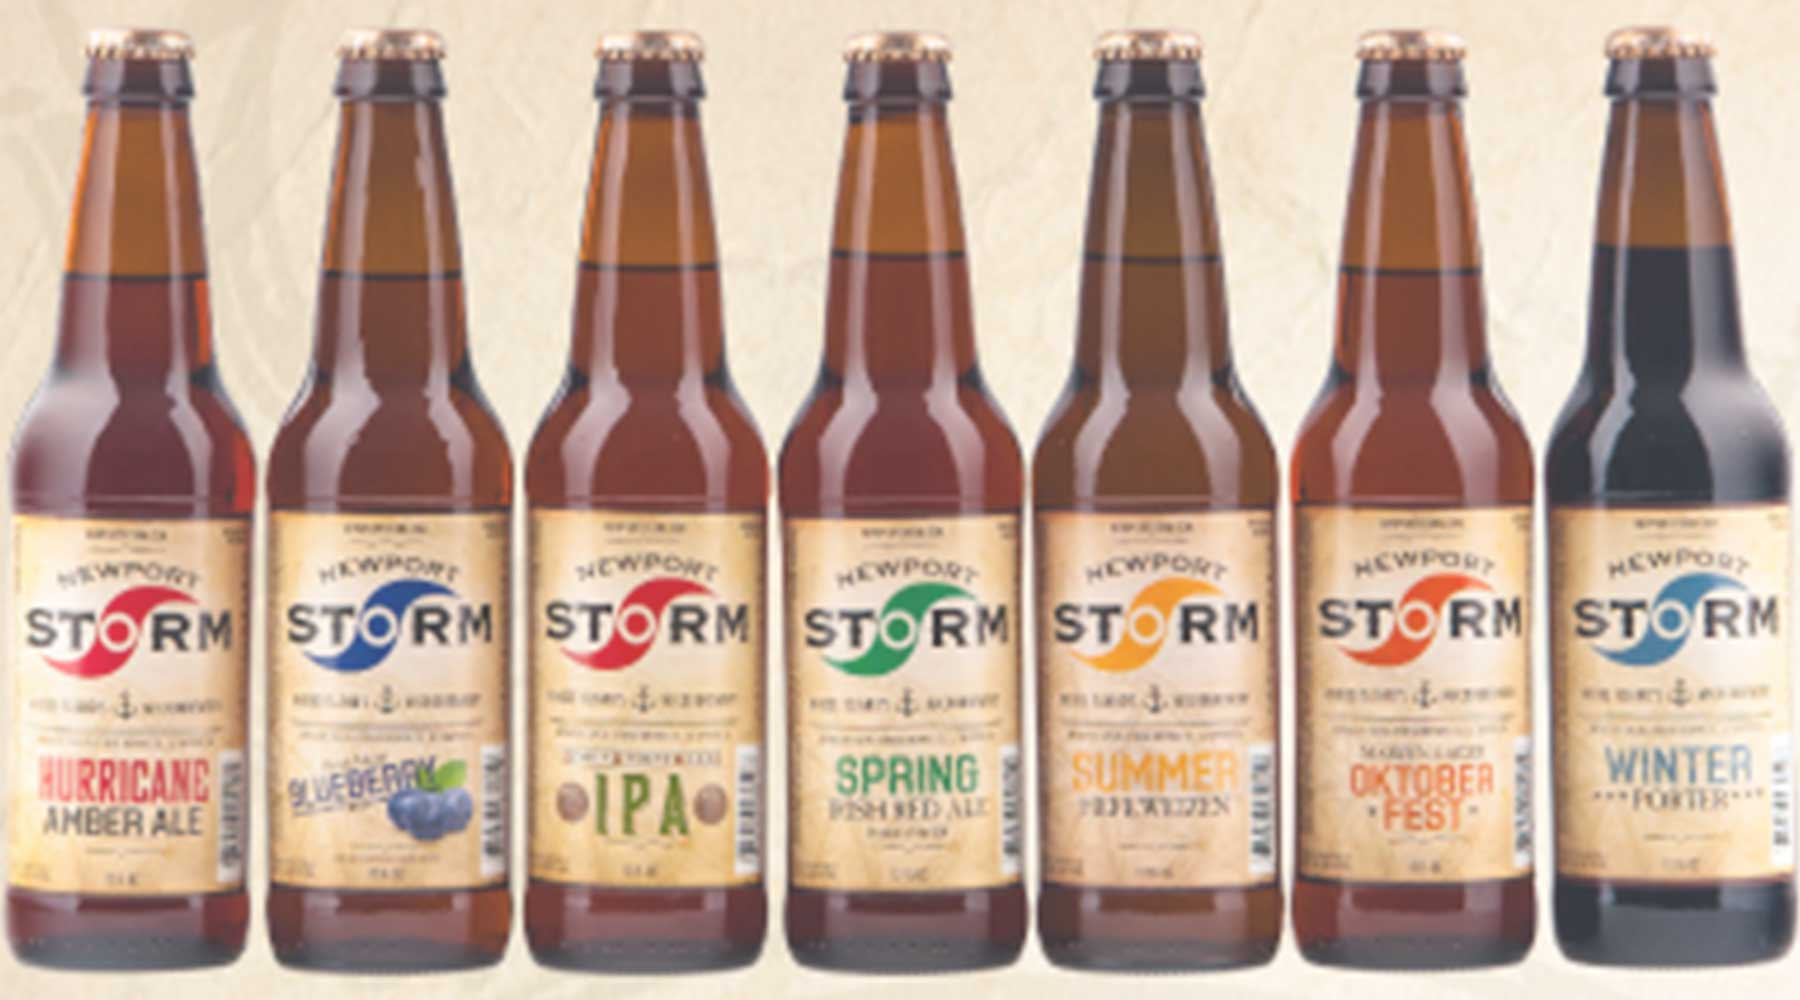 Newport Storm Brewery | Just Wine